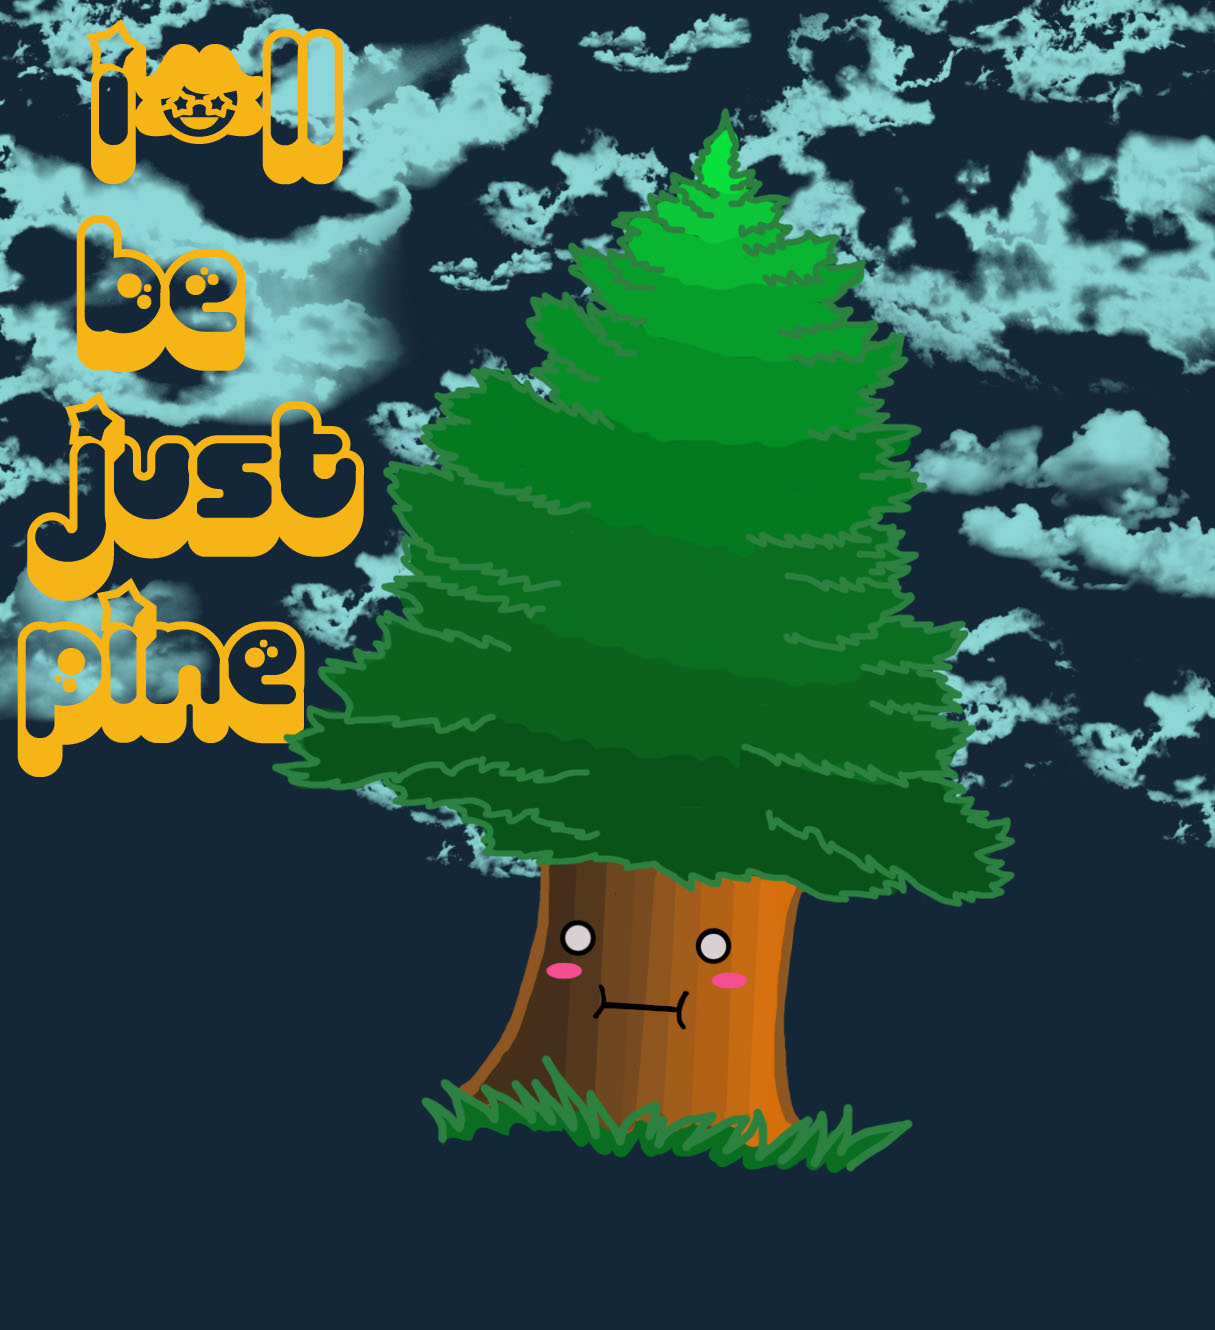 I'll be just pine.